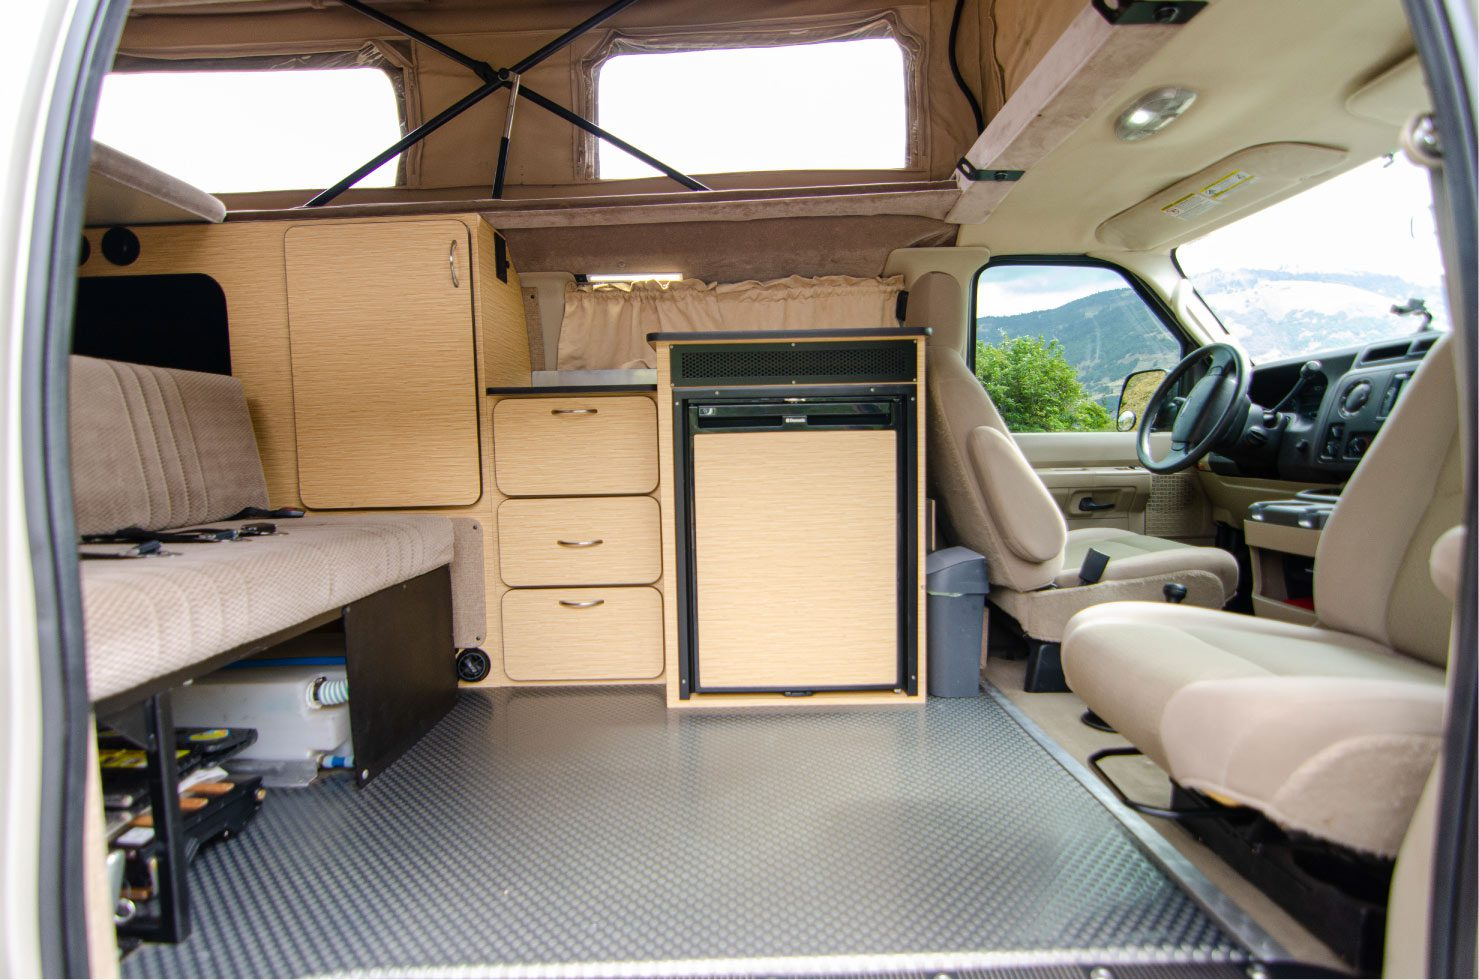 Interior view of a Ford E-Series 4x4 Econoline Sportsmobile RB50 Layout Campervan built by Van Specialties conversion for sale